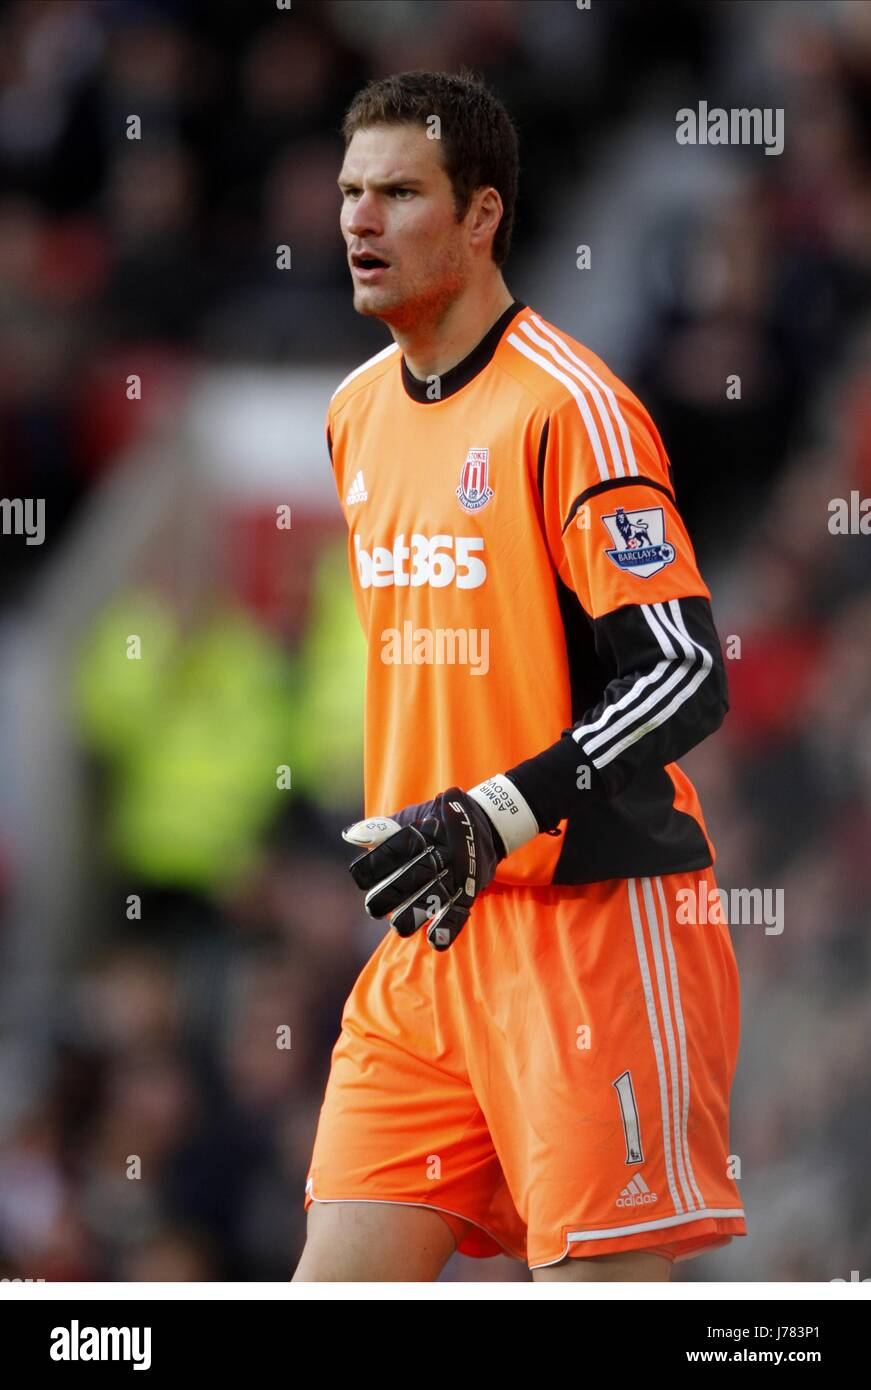 ASMIR BEGOVIC STOKE CITY FC OLD TRAFFORD MANCHESTER ENGLAND 20